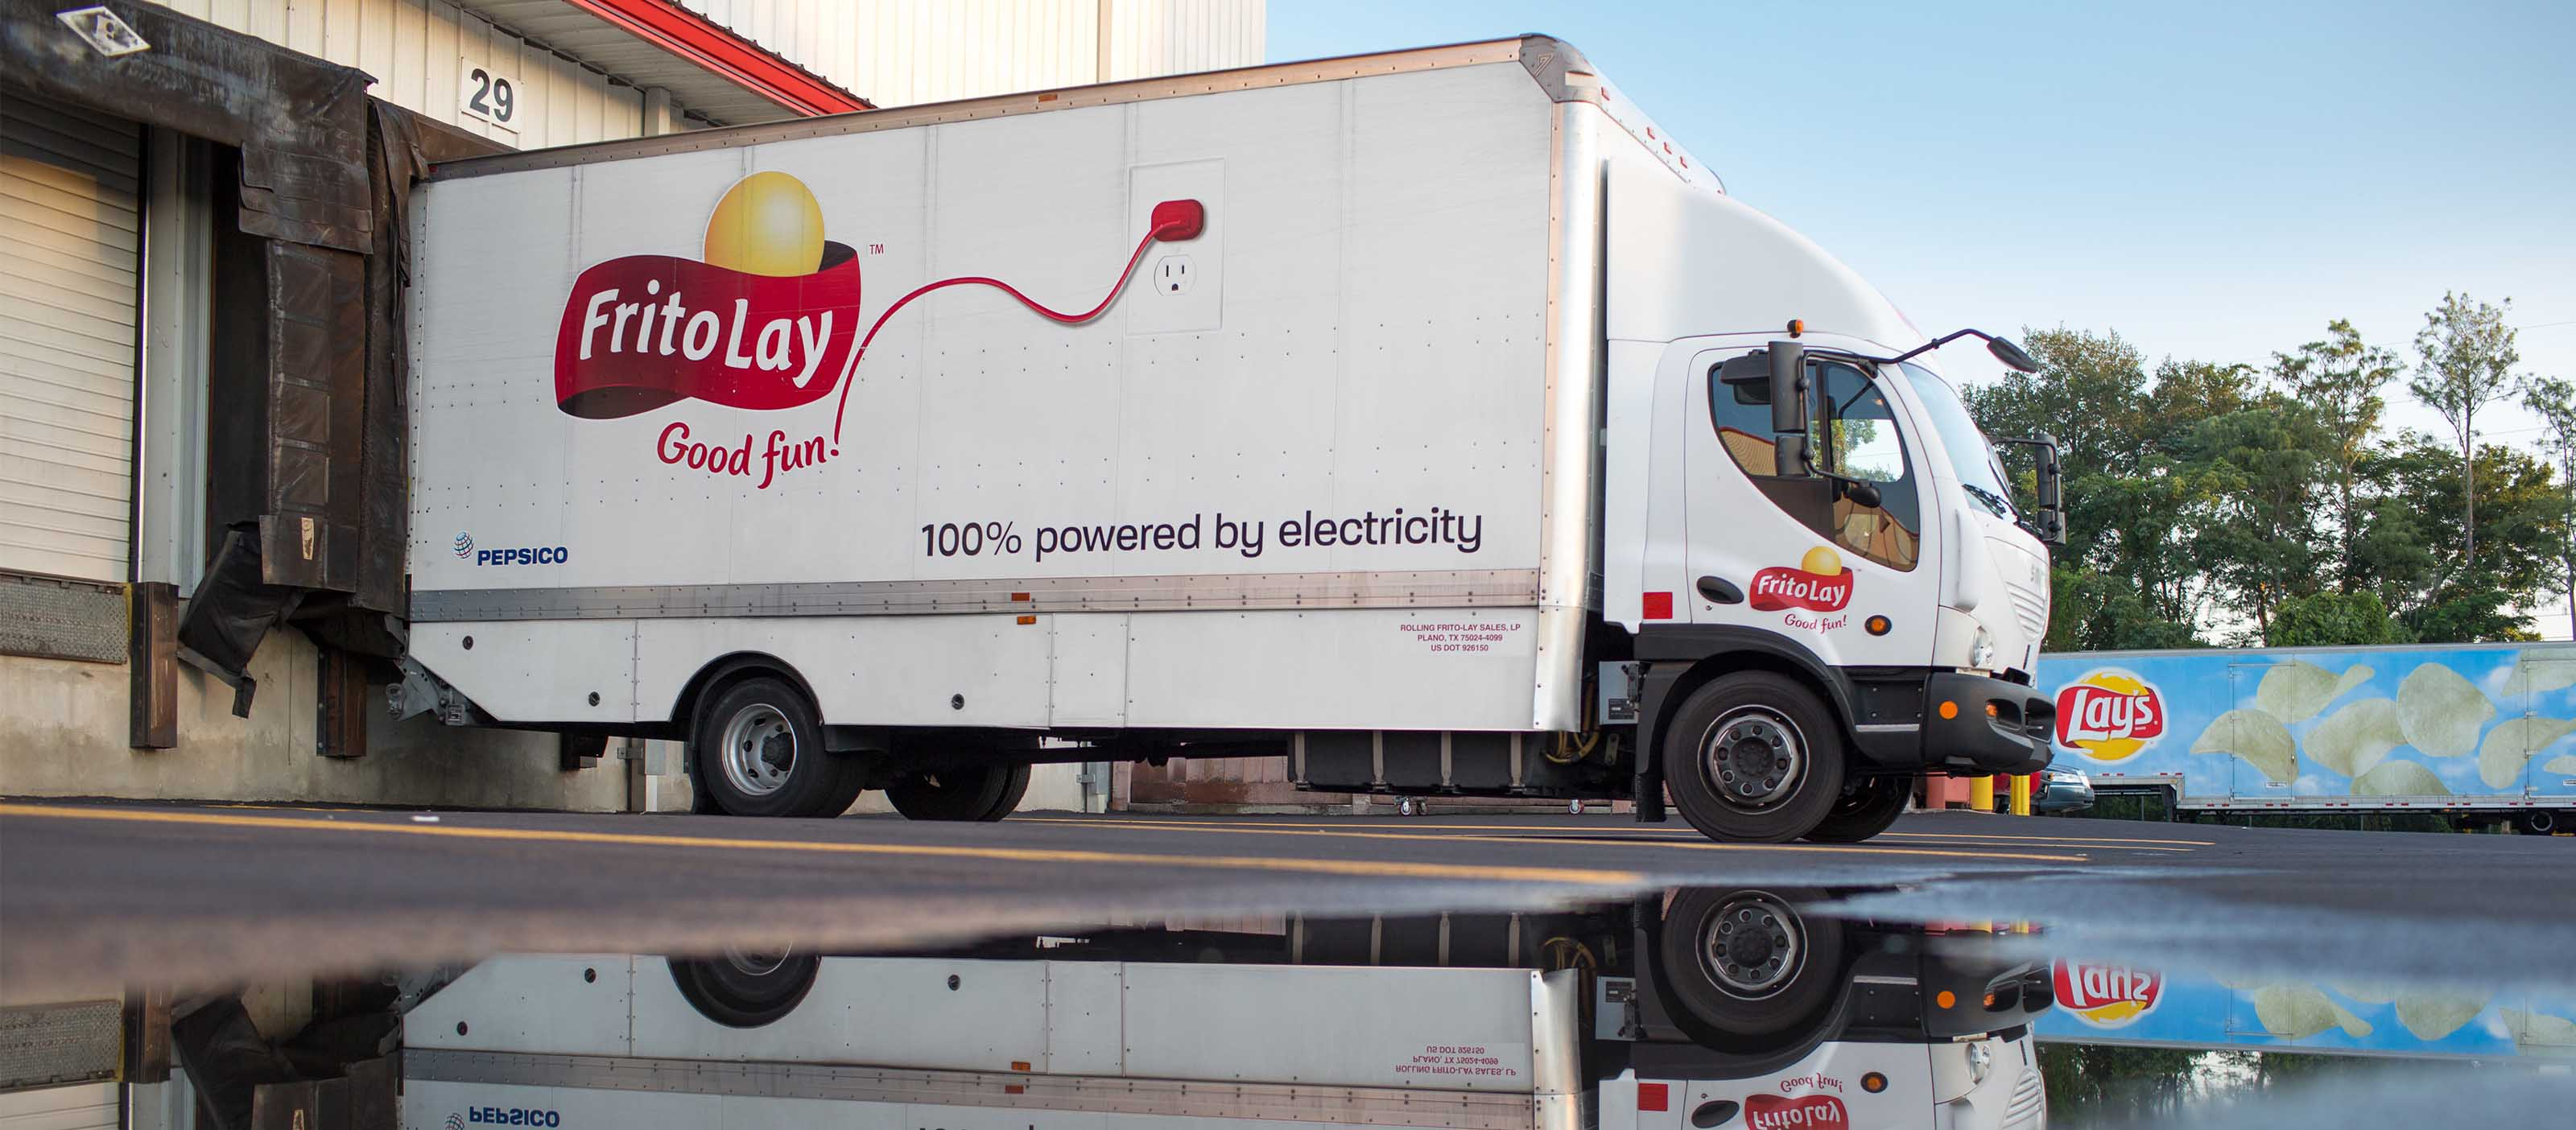 FritoLay Electric Vehicle